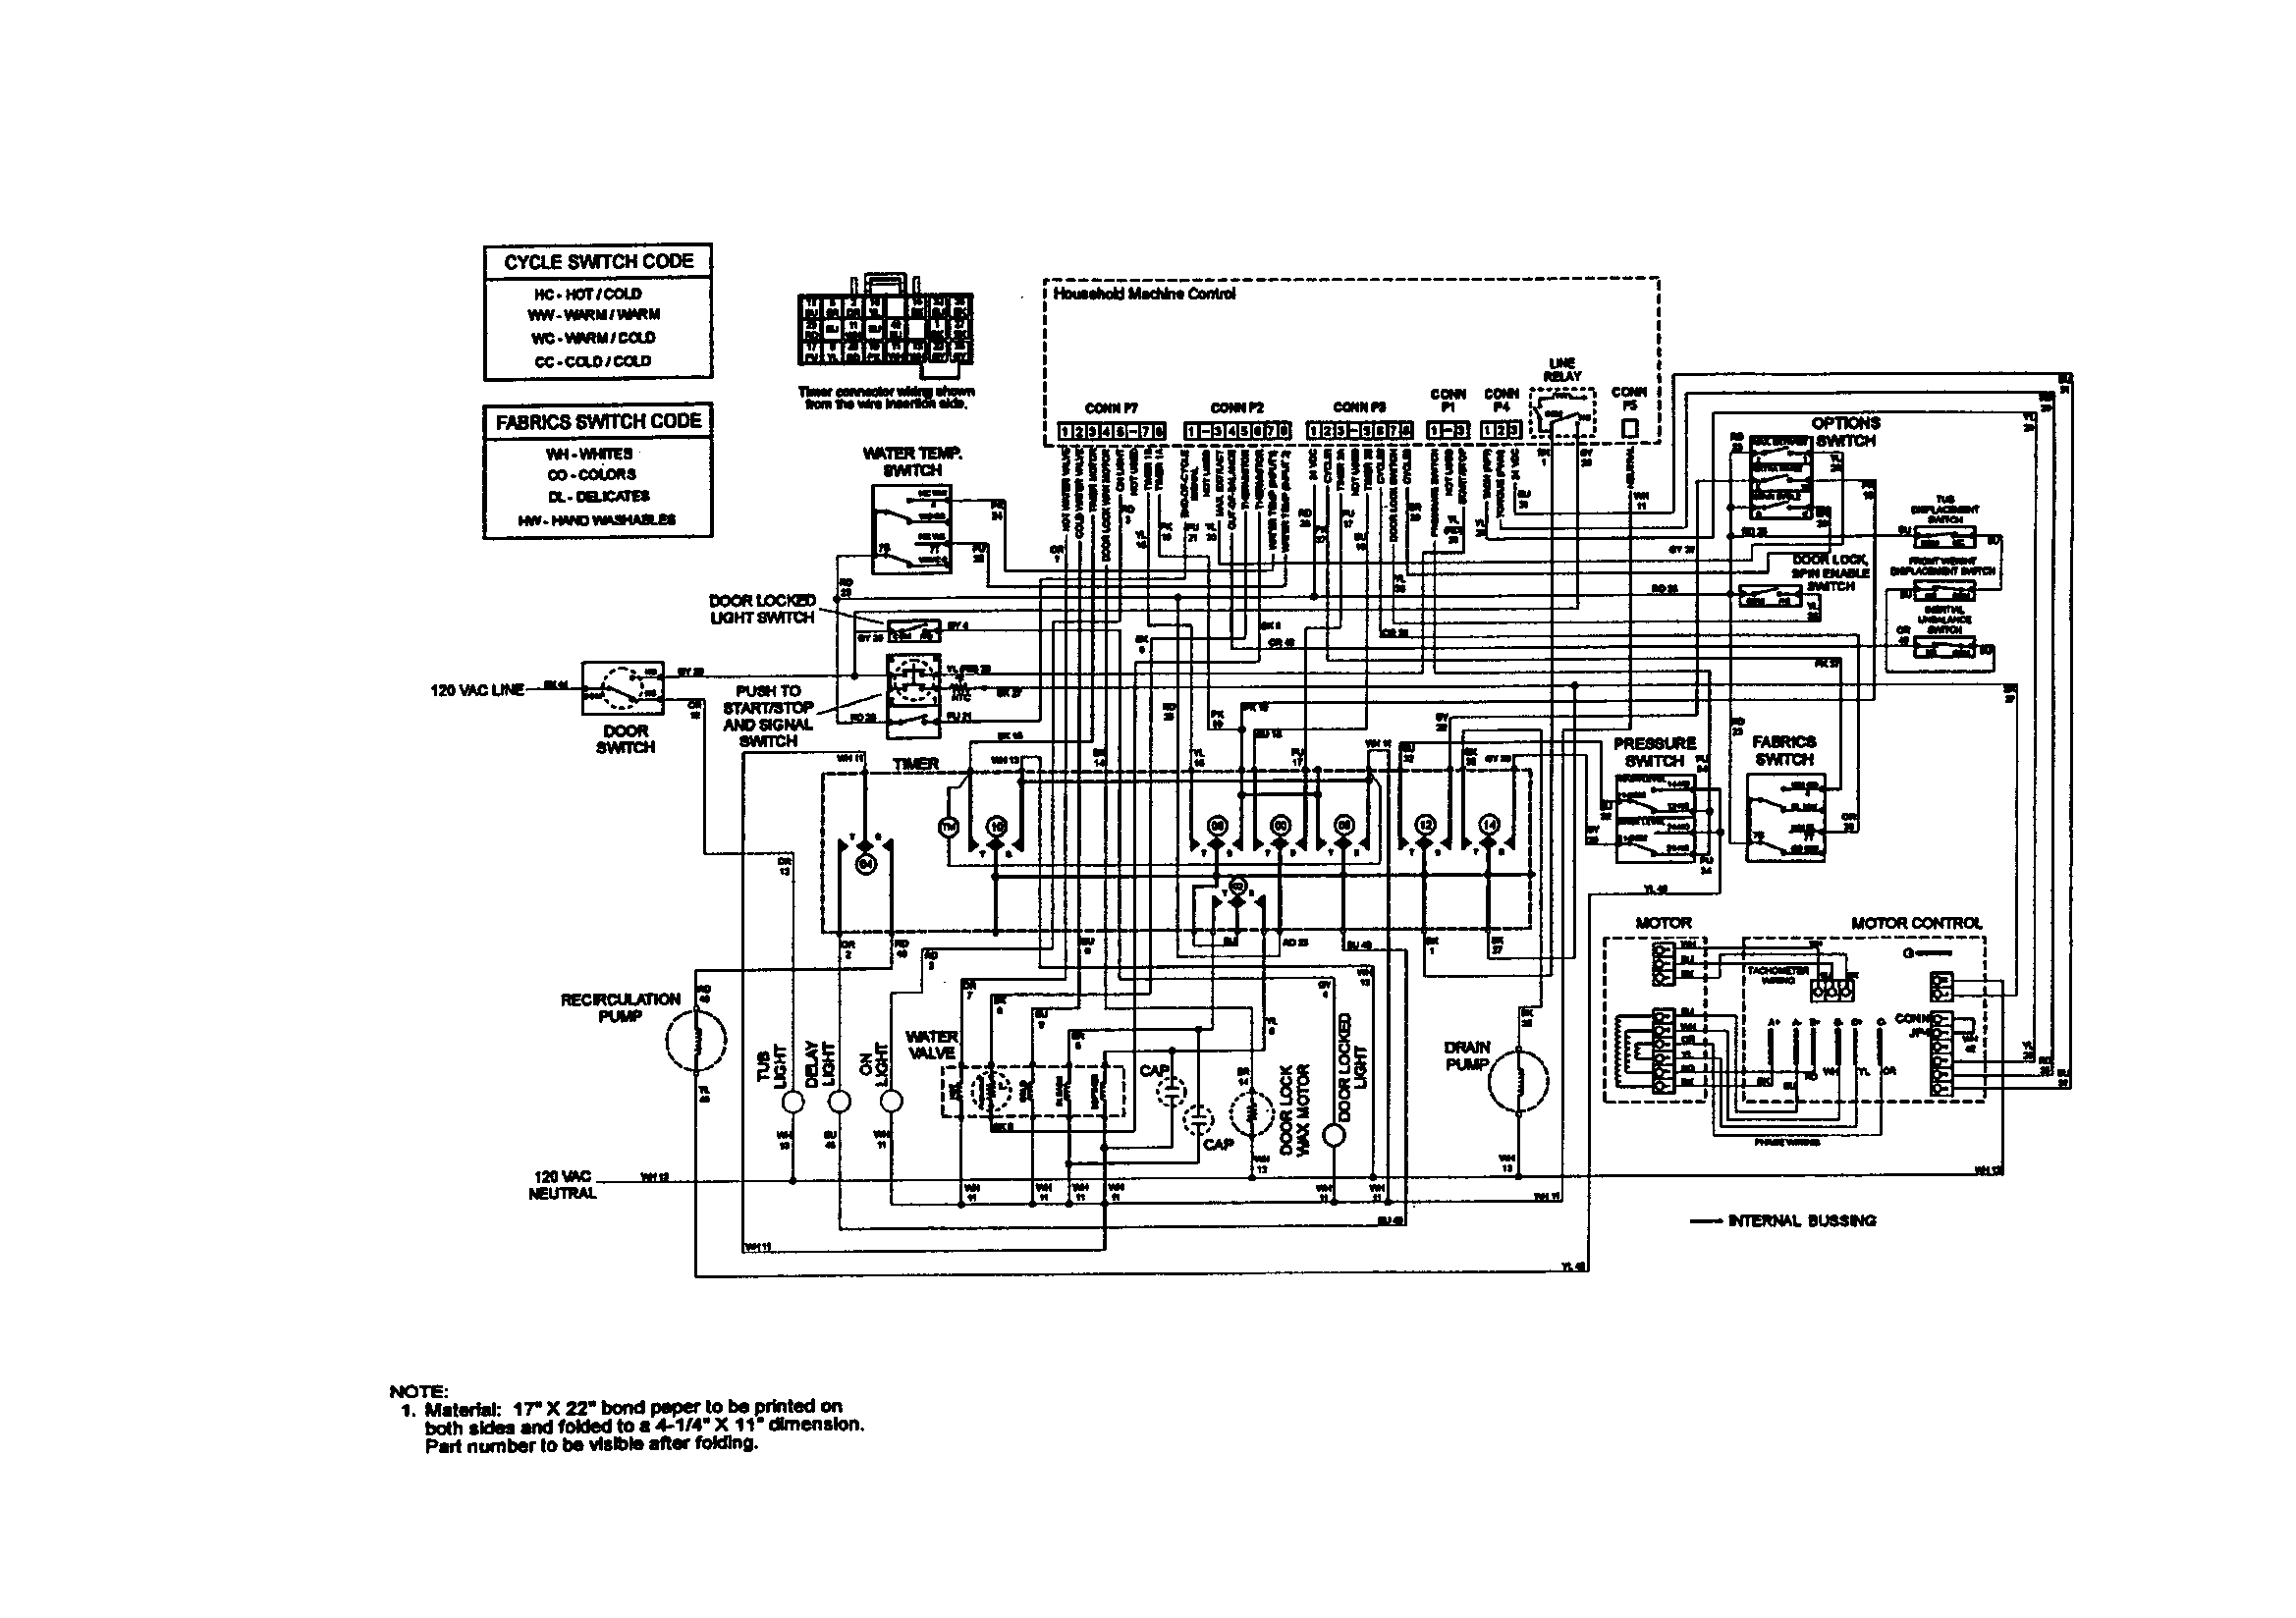 York Furnace Wiring Diagram | Wiring Schematic Diagram - 14 ... on aprilaire filters, aprilaire dehumidifier wiring diagram, aprilaire 800 wiring diagram, aprilaire 224 wiring diagram, aprilaire 600 wiring diagram, aprilaire wiring connection, aprilaire 7 00a wiring-diagram, aprilaire 500 wiring to furnace, aprilaire 560 wiring diagram, aprilaire 110 wiring diagram, aprilaire relay diagram, aprilaire 500 wiring diagram, aprilaire thermostat wiring diagram, aprilaire furnace wire harness to old, aprilaire 4655 wiring,